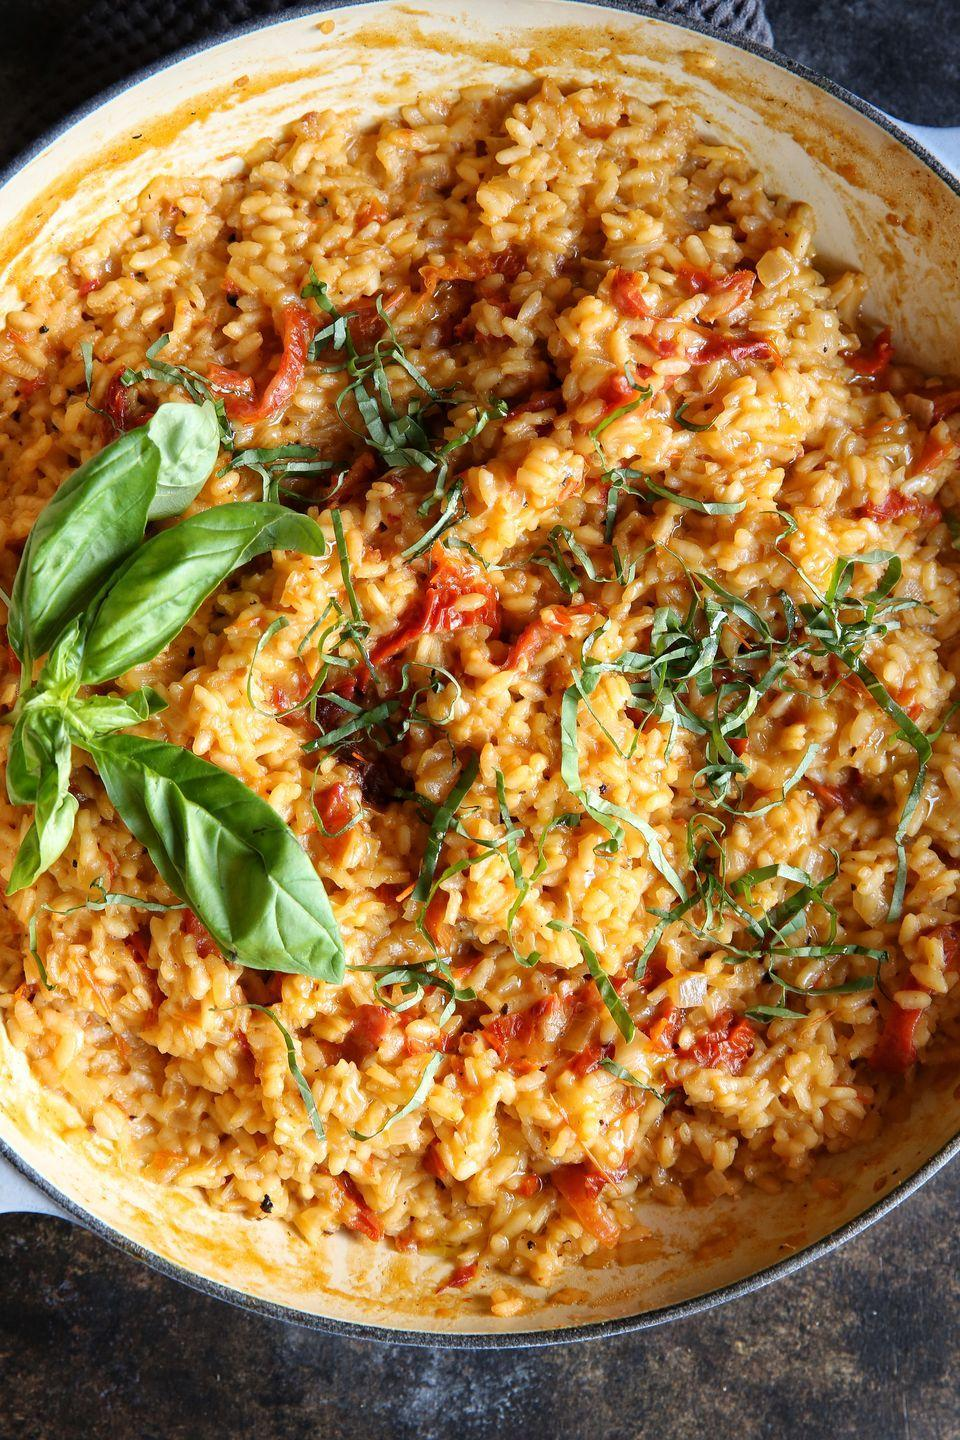 "<p>Show the fancy restaurant dish who's boss.</p><p>Get the recipe from <a href=""https://www.delish.com/cooking/recipe-ideas/recipes/a49321/sun-dried-tomato-risotto/"" rel=""nofollow noopener"" target=""_blank"" data-ylk=""slk:Delish"" class=""link rapid-noclick-resp"">Delish</a>.</p>"